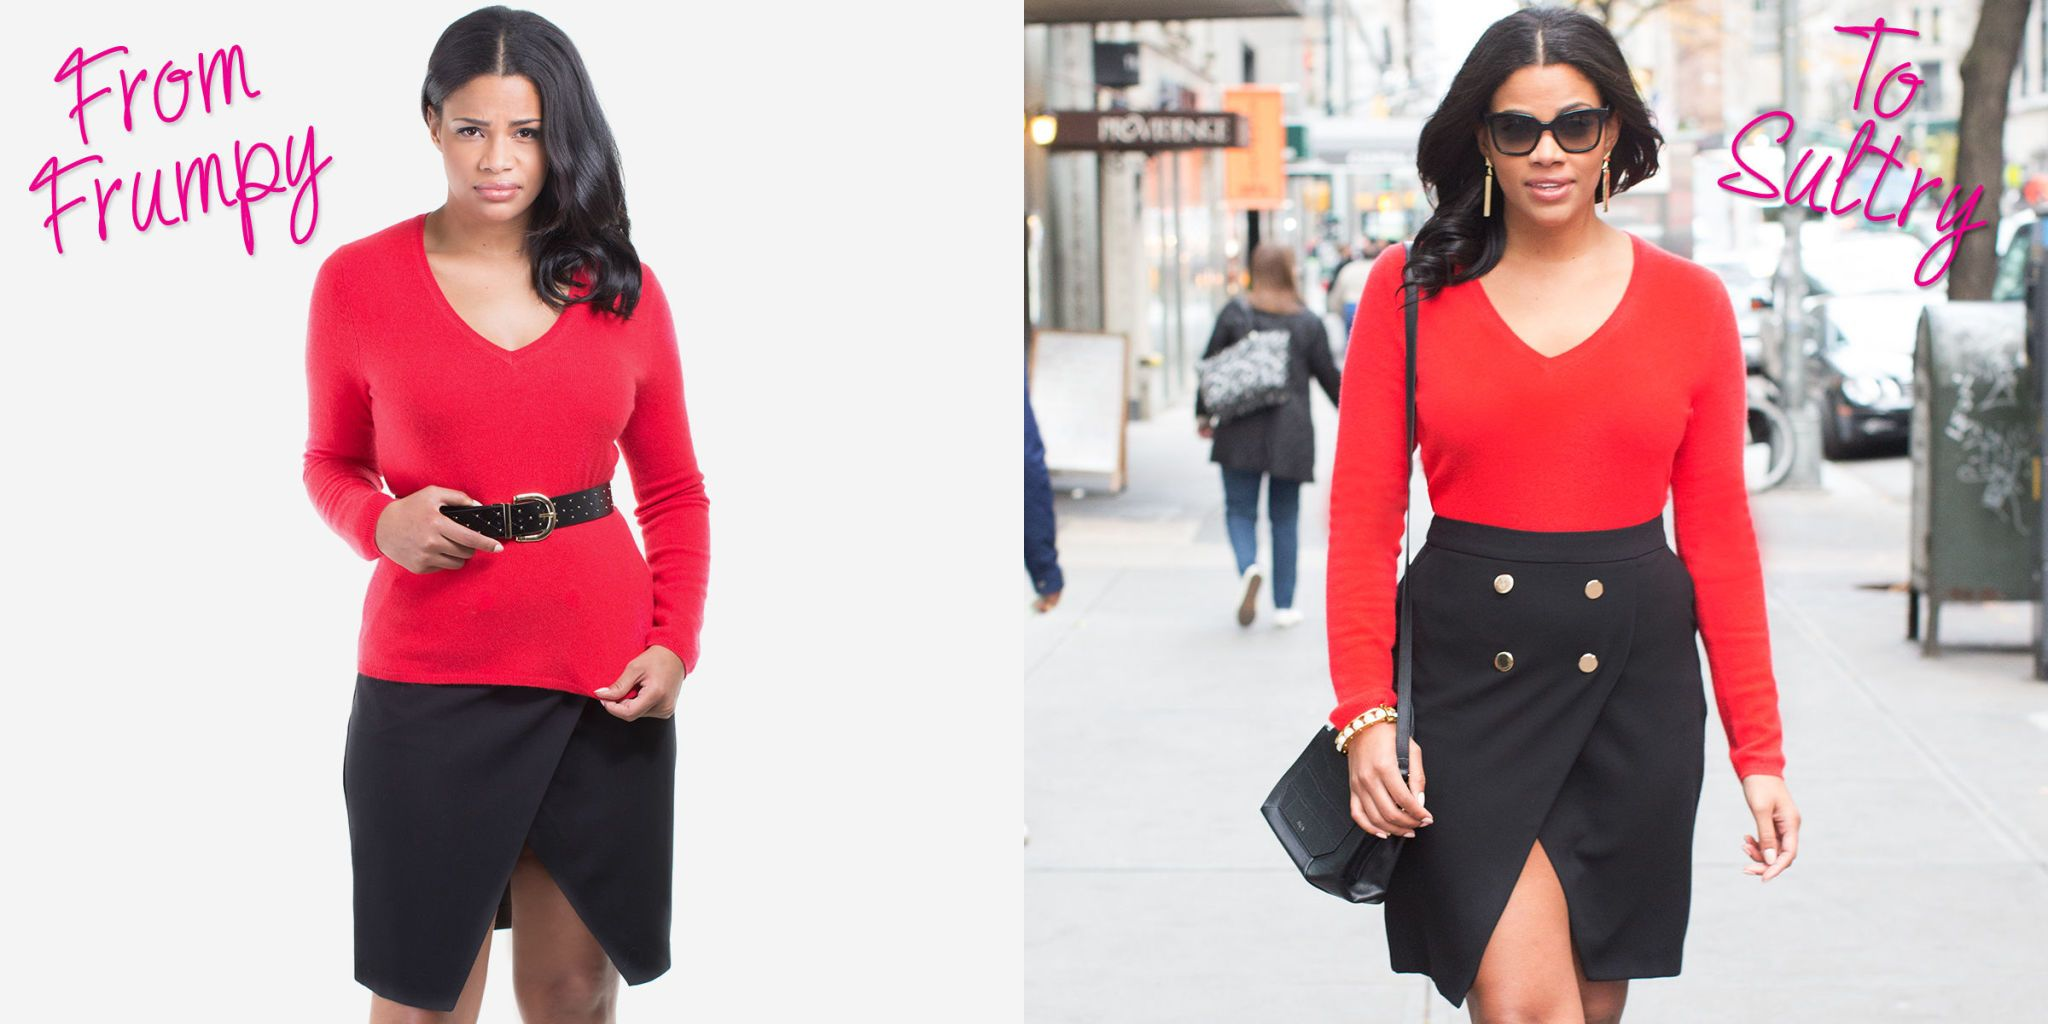 Watch 9 Easy Ways to Make Your Outfit Look More Expensive this Spring video